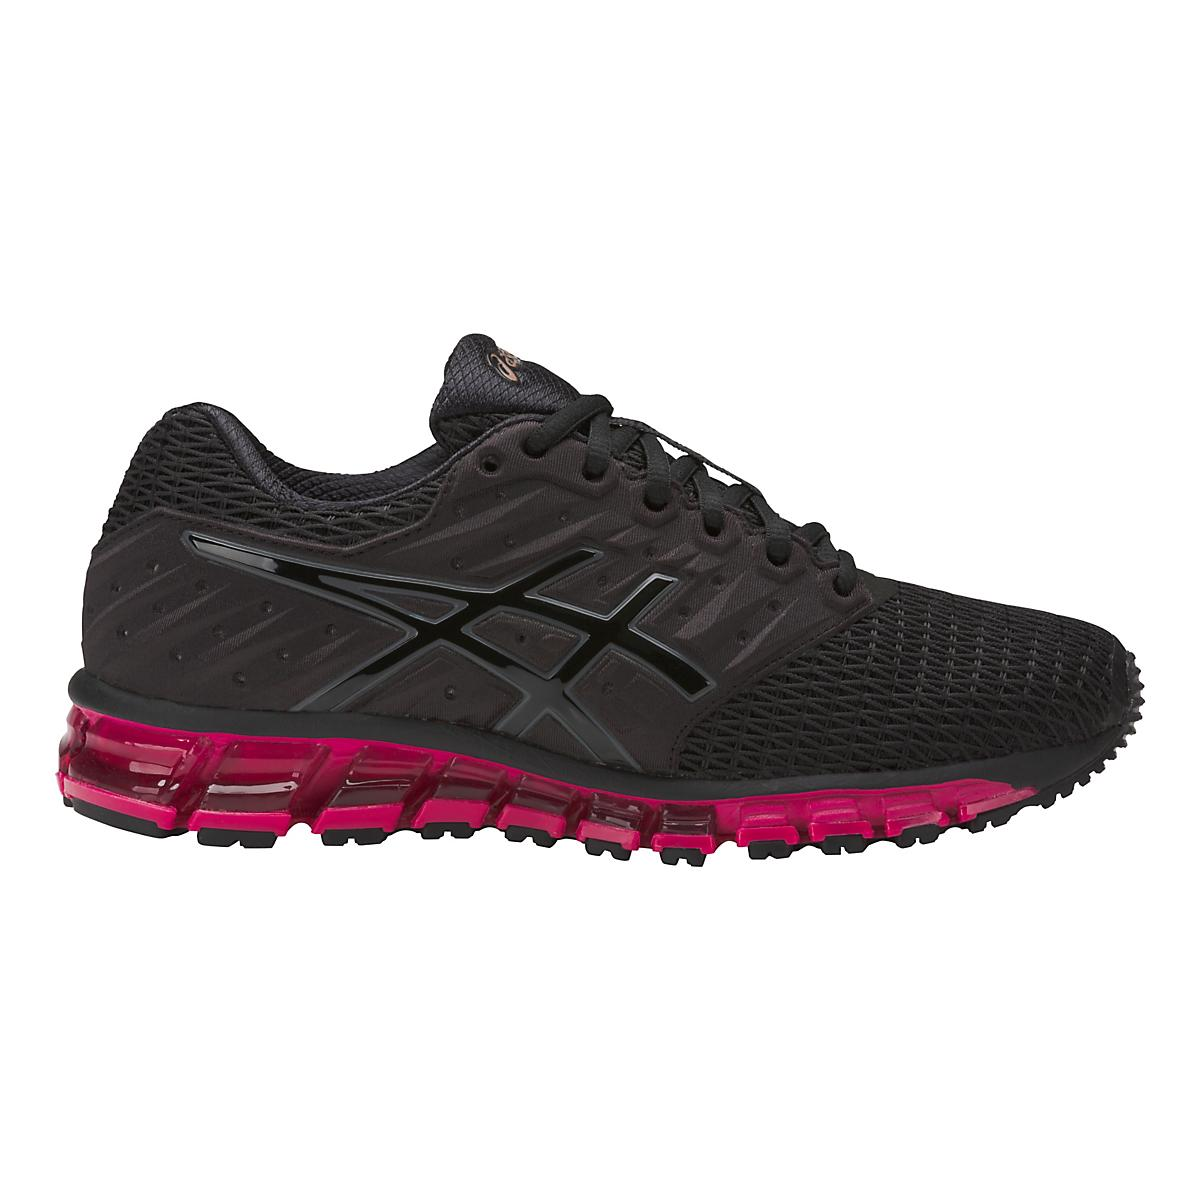 womens asics gel quantum 180 2 running shoe at road runner sports. Black Bedroom Furniture Sets. Home Design Ideas